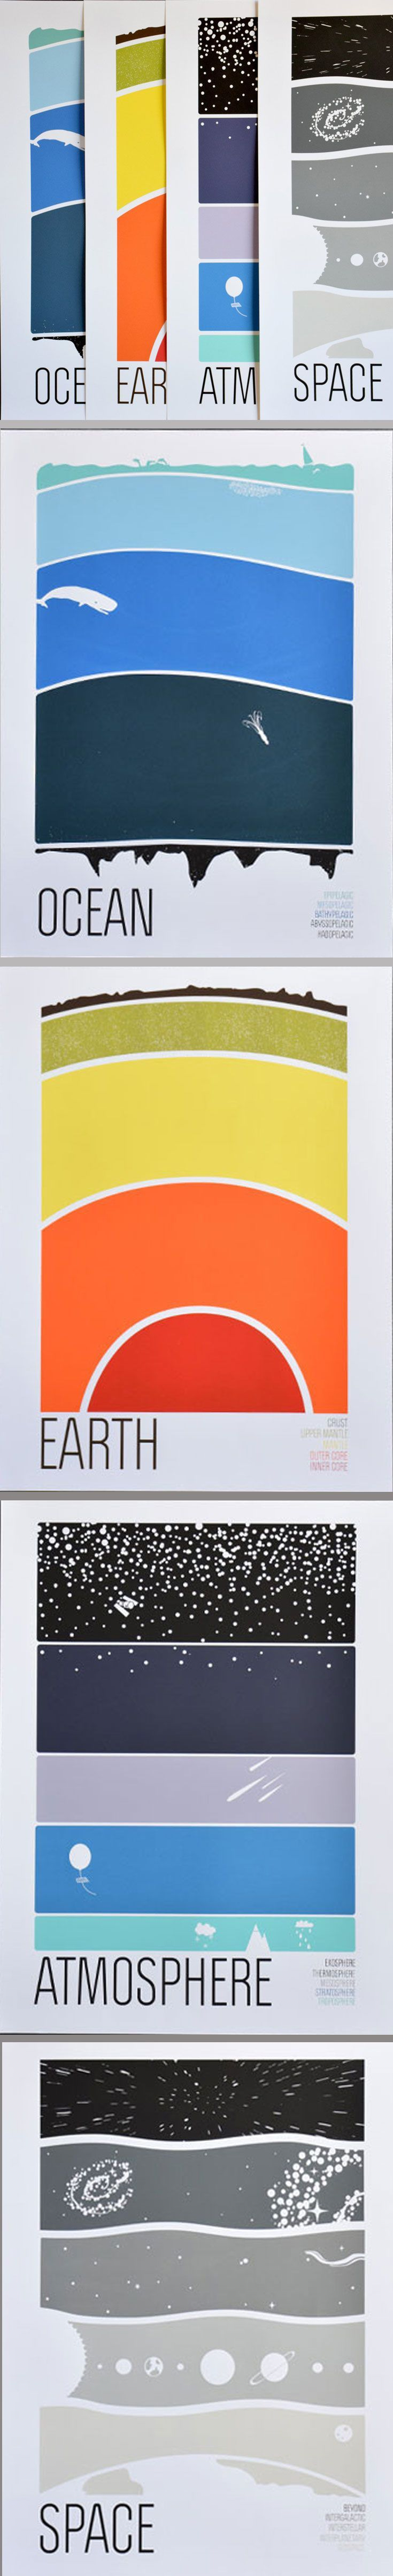 "Earth! And Science! And Art! Hooray! This discounted set includes all four Earth Science prints from Brainstorm: Earth, Atmosphere, Ocean, and Space. Each 5-color screenprint measures 18"" x 24."" #colossal"